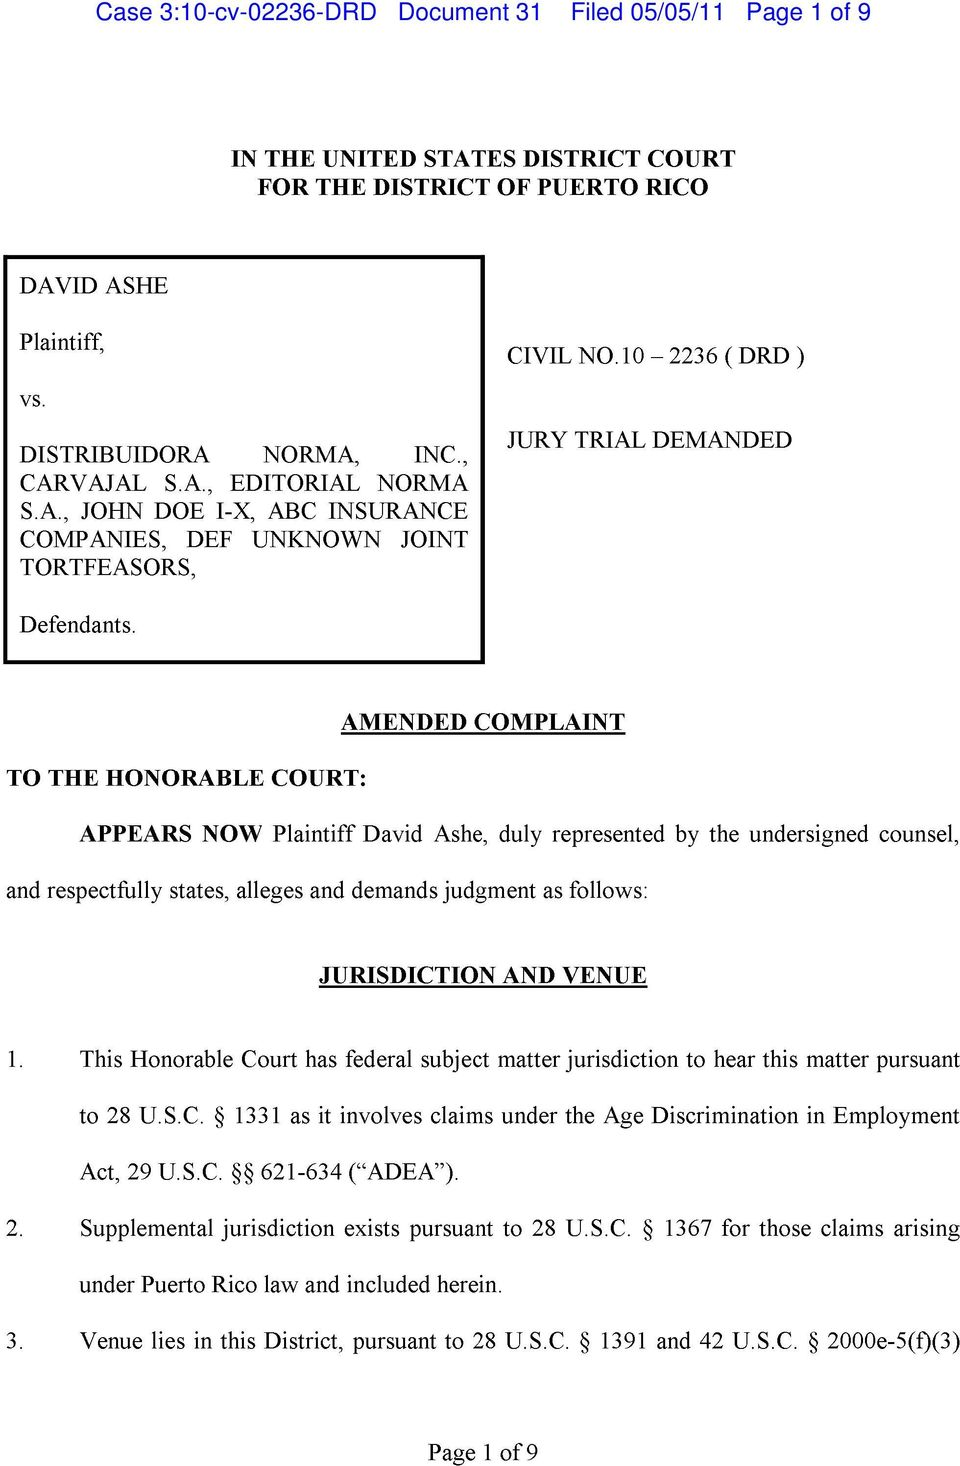 AMENDED COMPLAINT TO THE HONORABLE COURT : APPEARS NOW Plaintiff David Ashe, duly represented by the undersigned counsel, and respectfully states, alleges and demands judgment as follows :